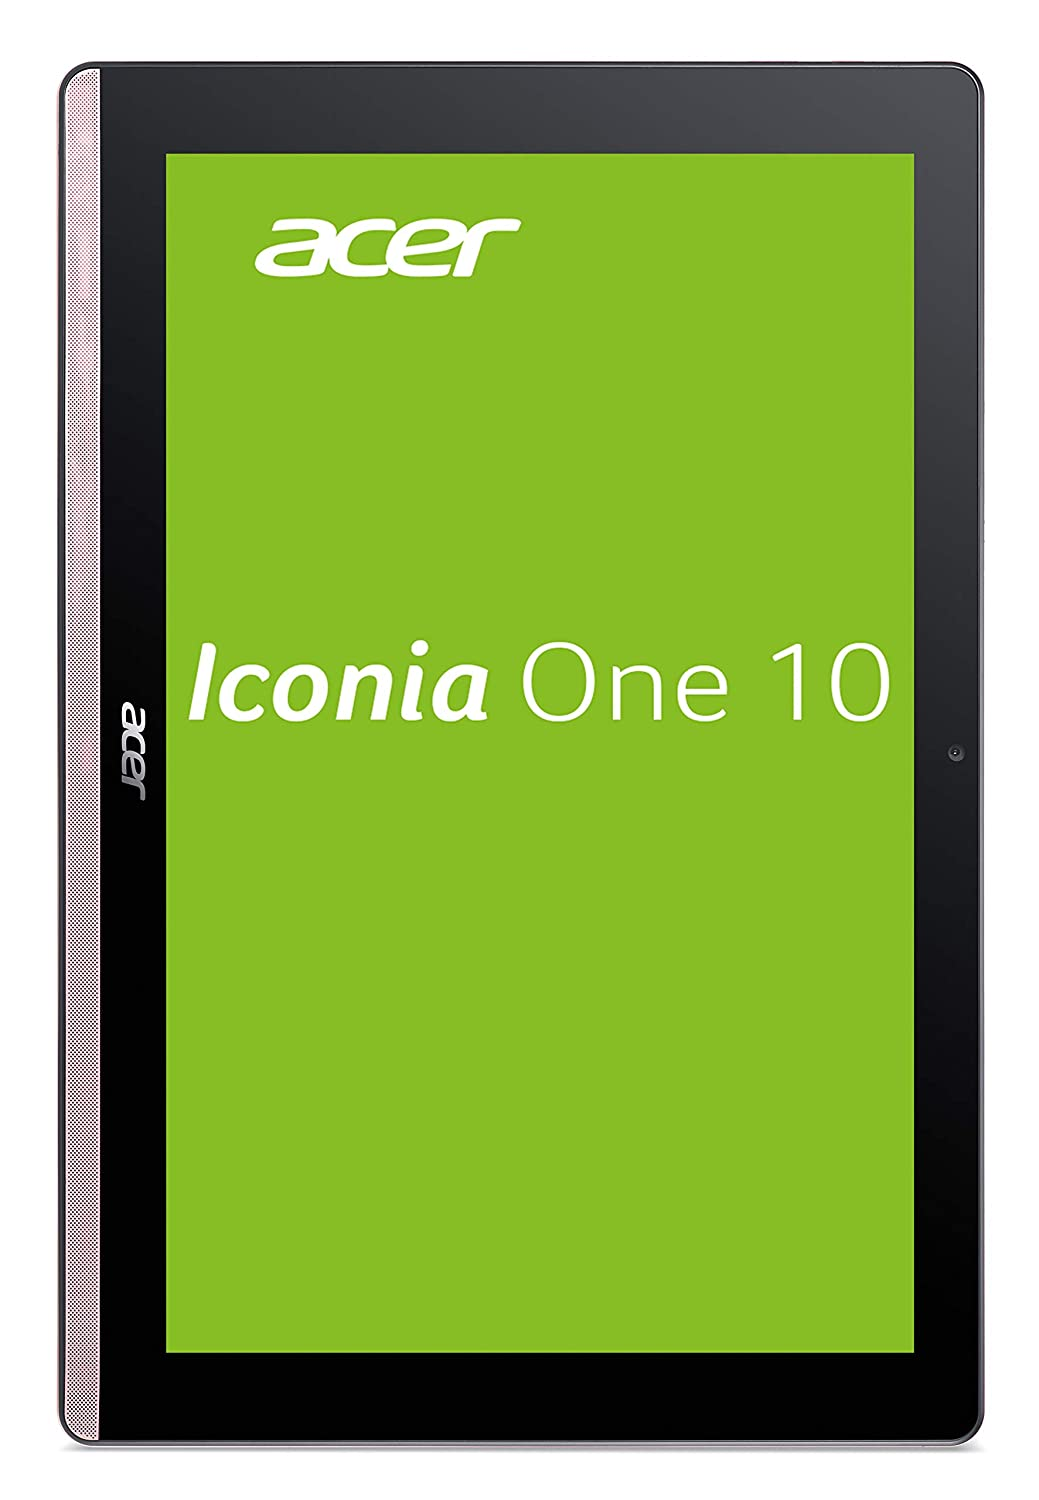 Acer Iconia One 10 257 Cm Multimedia Tablet Computer Paket M3 2gb Zubehr